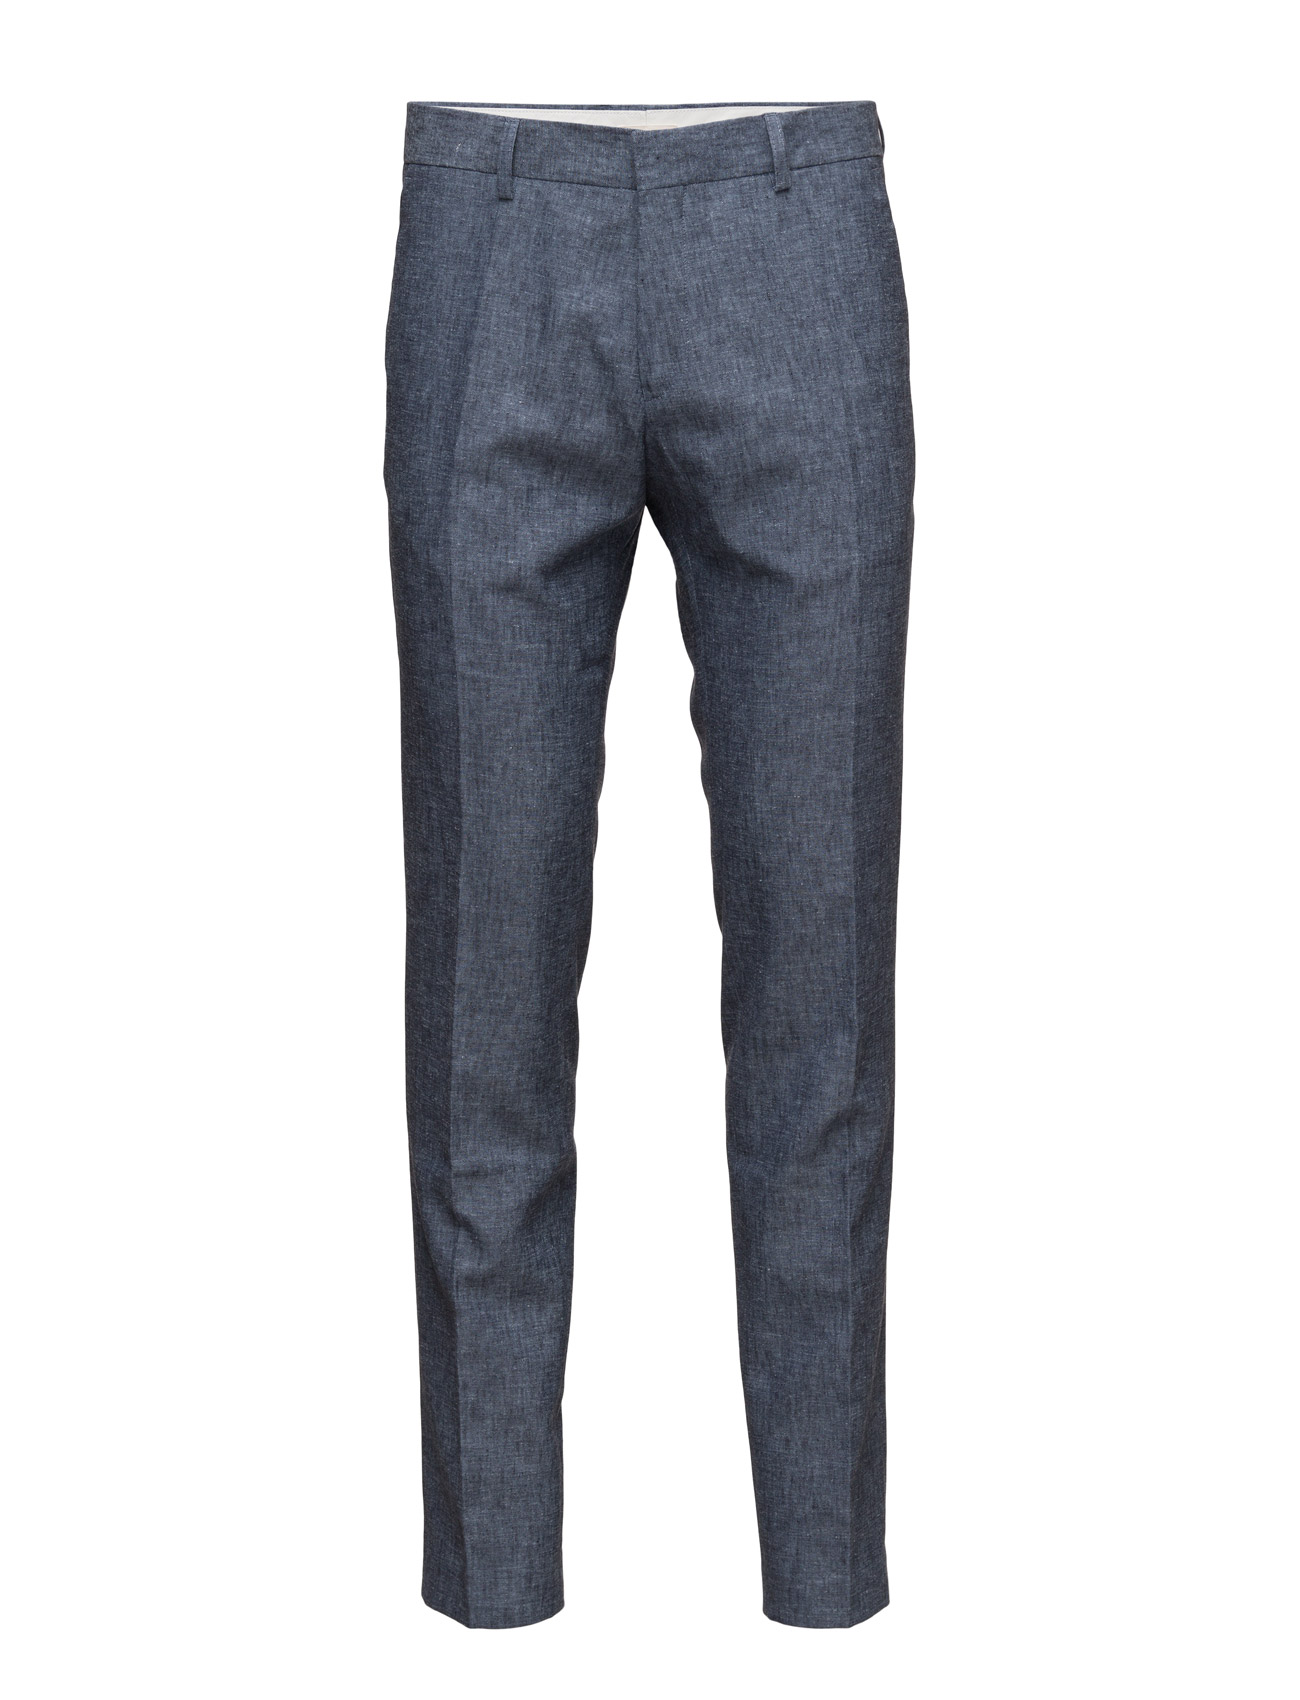 Linen Pant Knowledge Cotton Apparel Chinos til Mænd i Total Eclipse